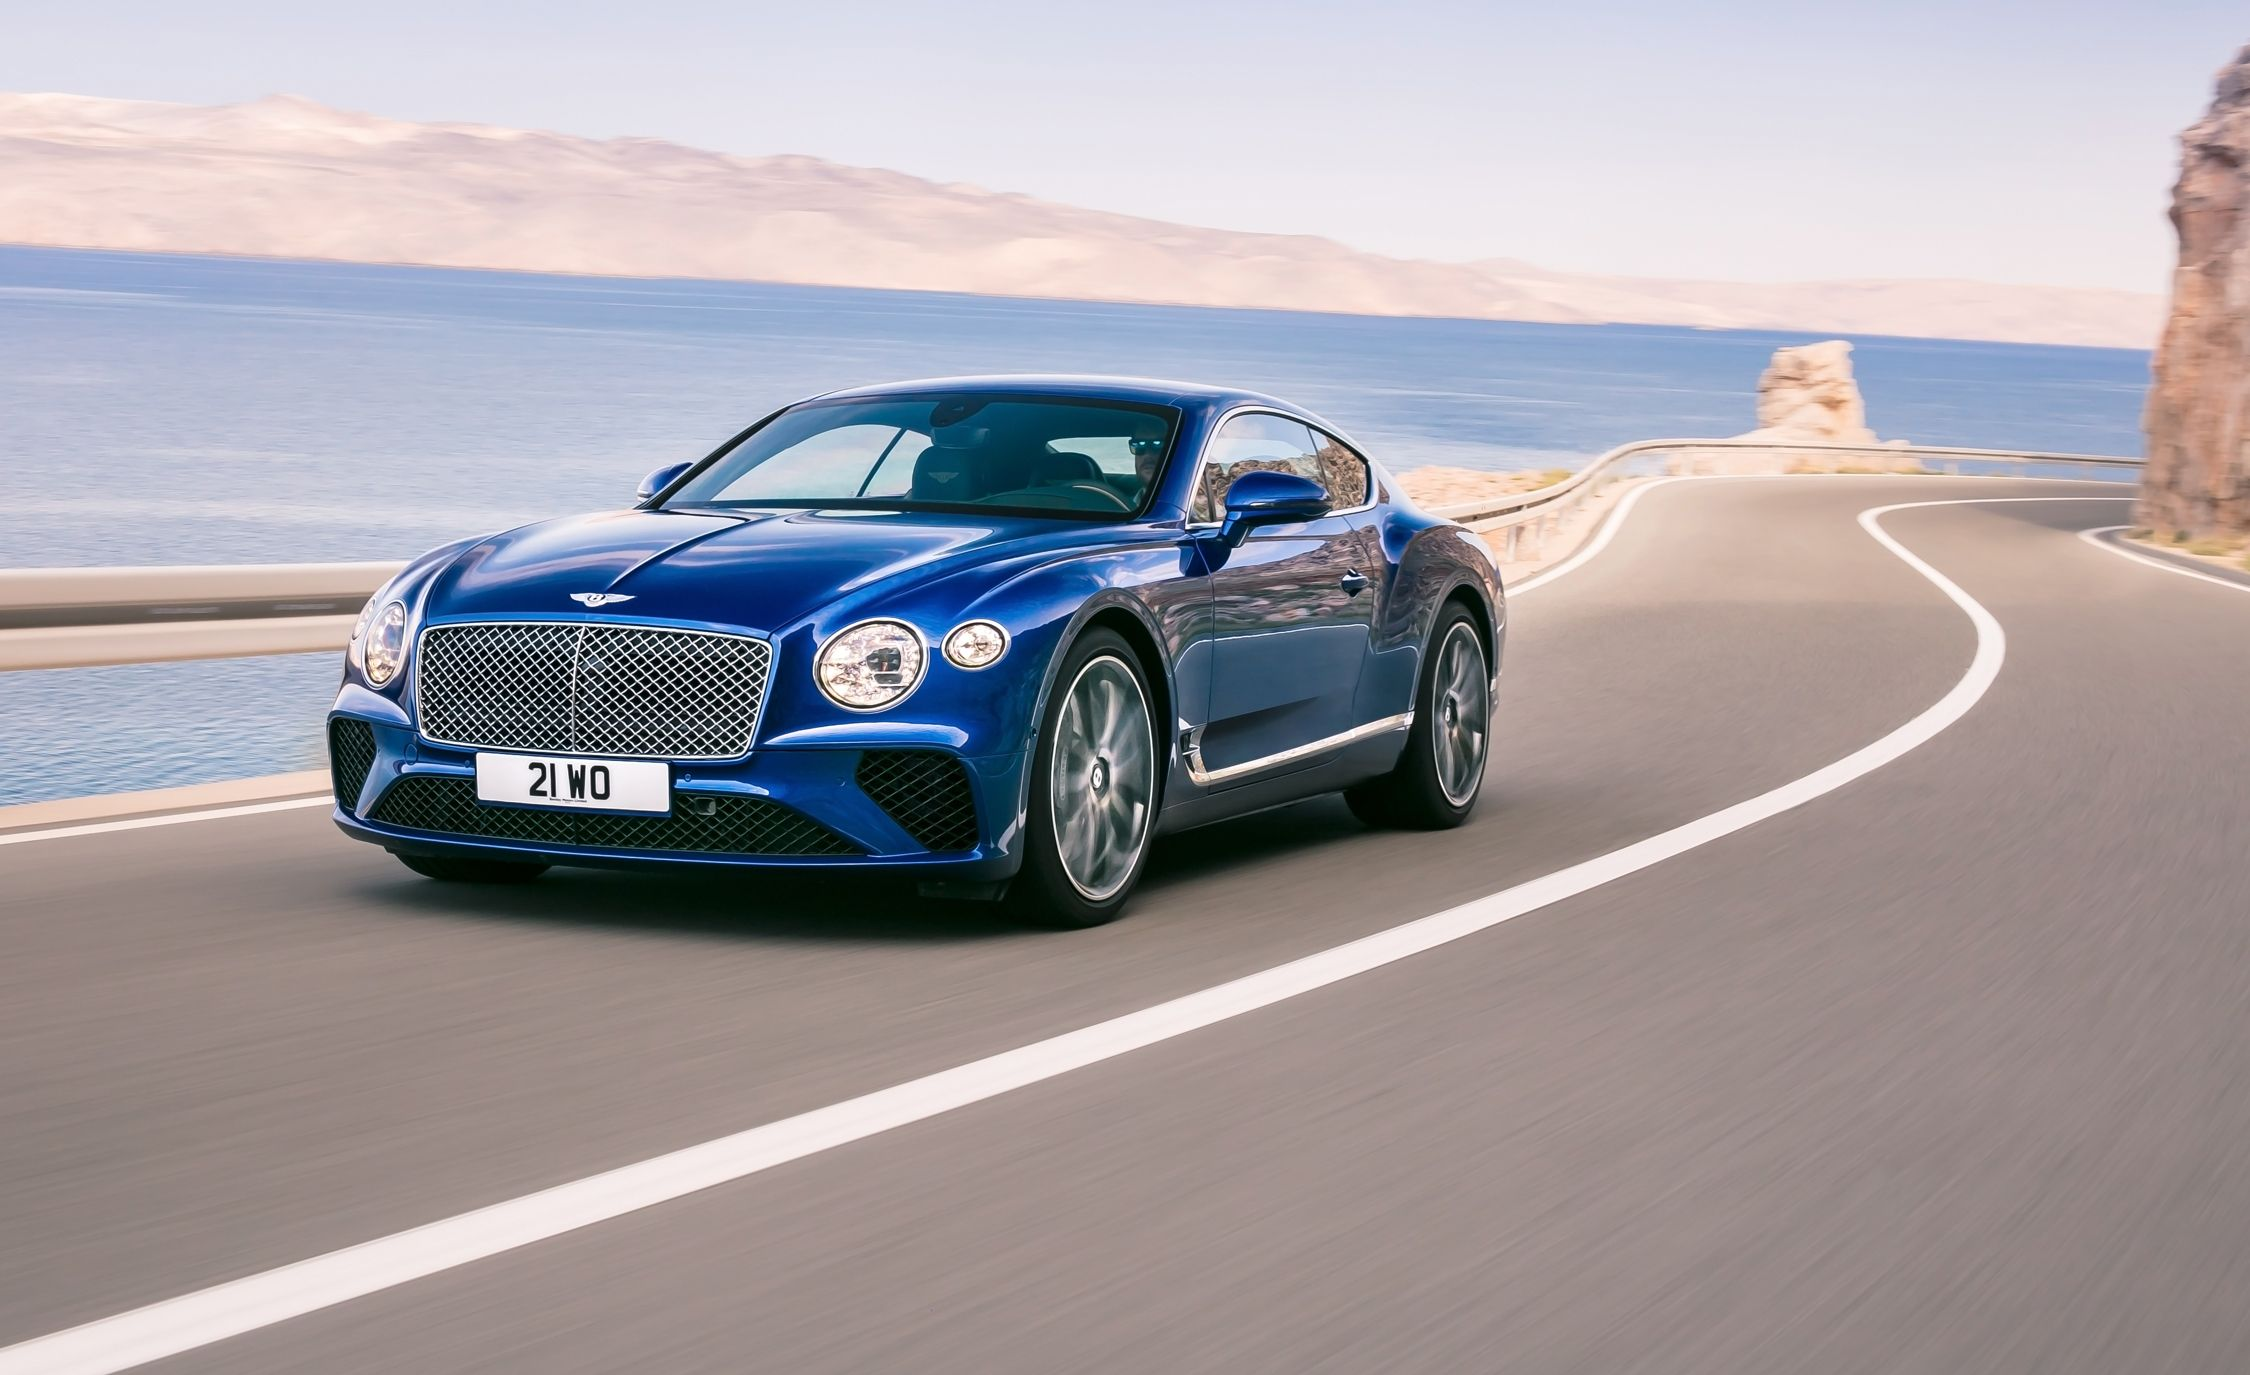 ... Sport Car 2023 In Galleries. Beau 2019 Bentley Continental GT: Going  Ballistic